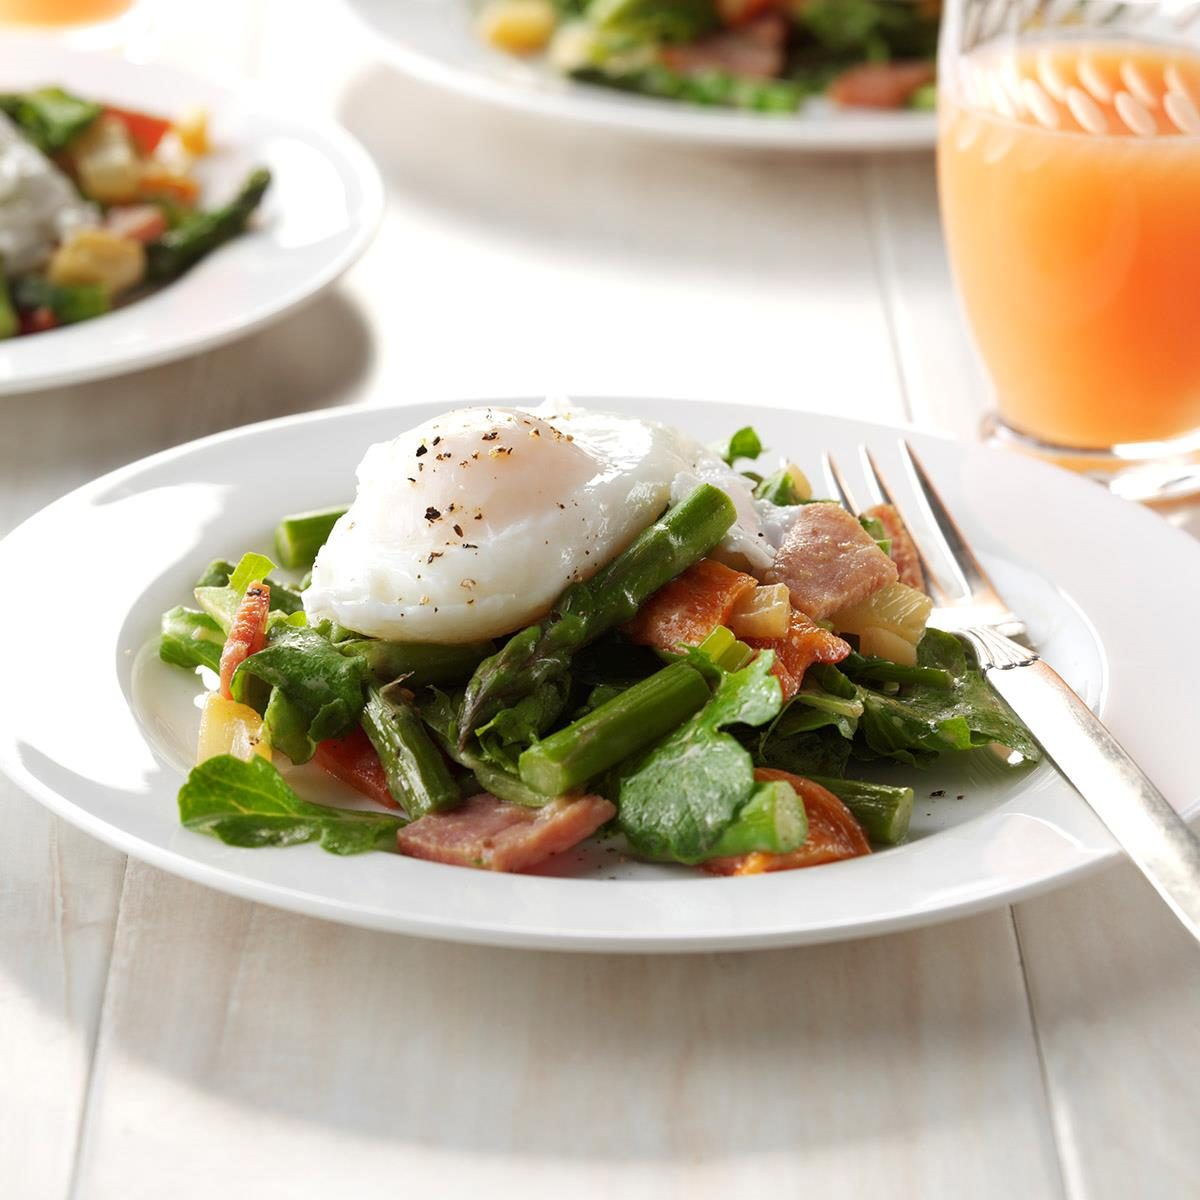 Day 18: Twisted Eggs Benedict Salad